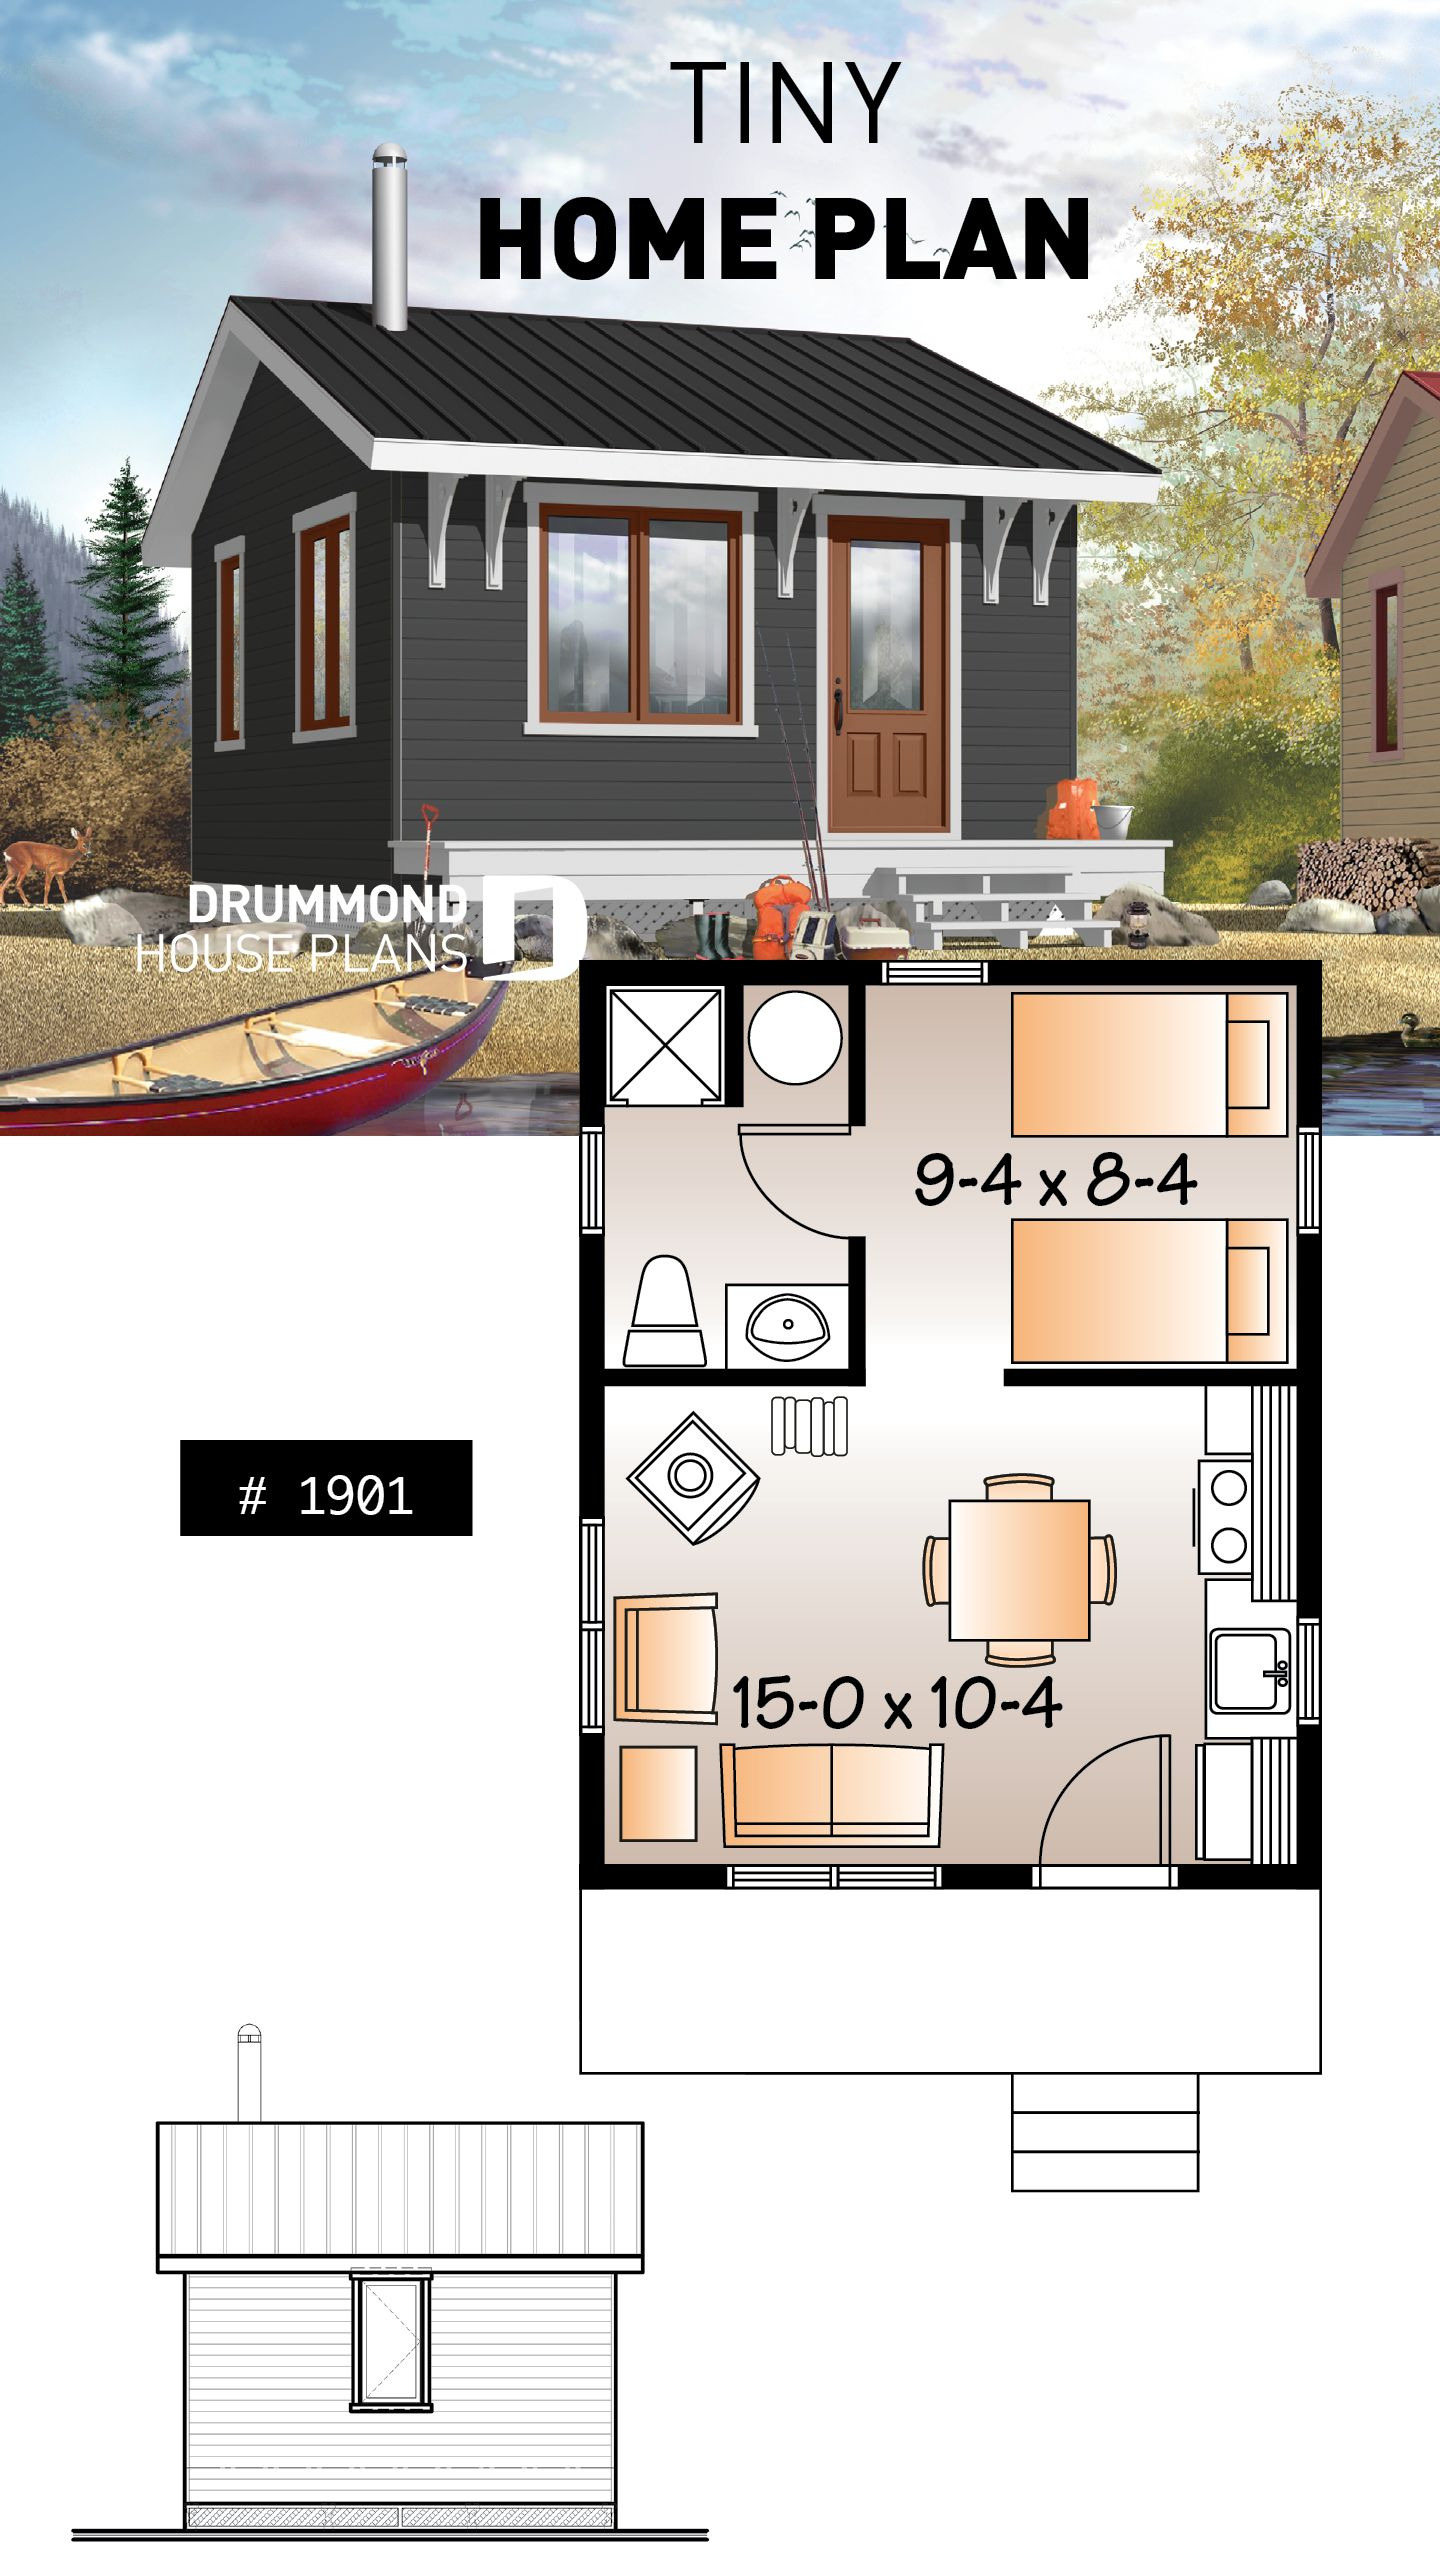 Tiny House Designs and Floor Plans Inspirational House Plan Woodwinds No 1901